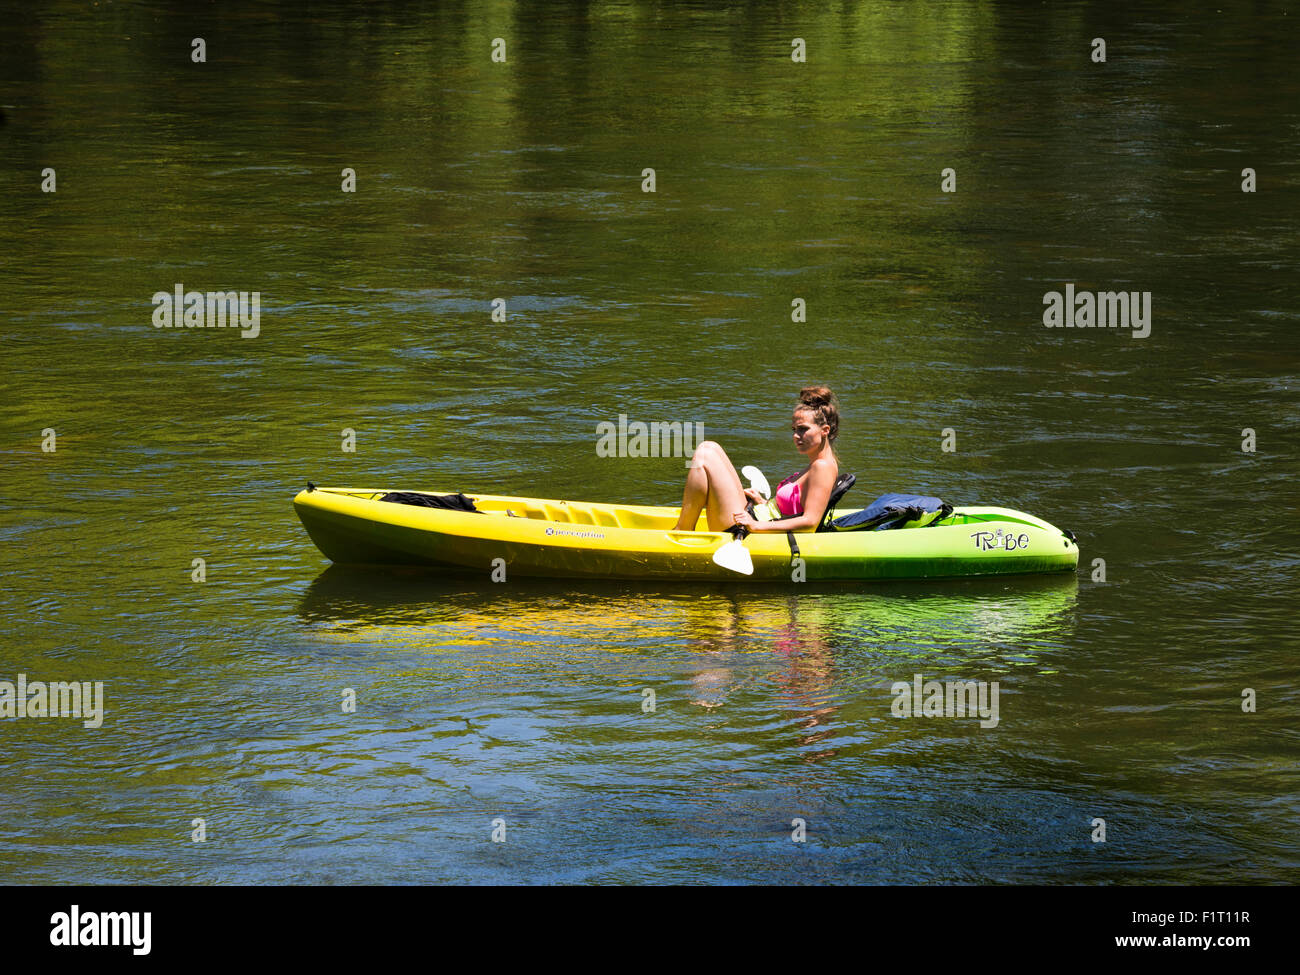 Recreational boating / canoing on the French Broad River in Asheville North Carolina - Stock Image